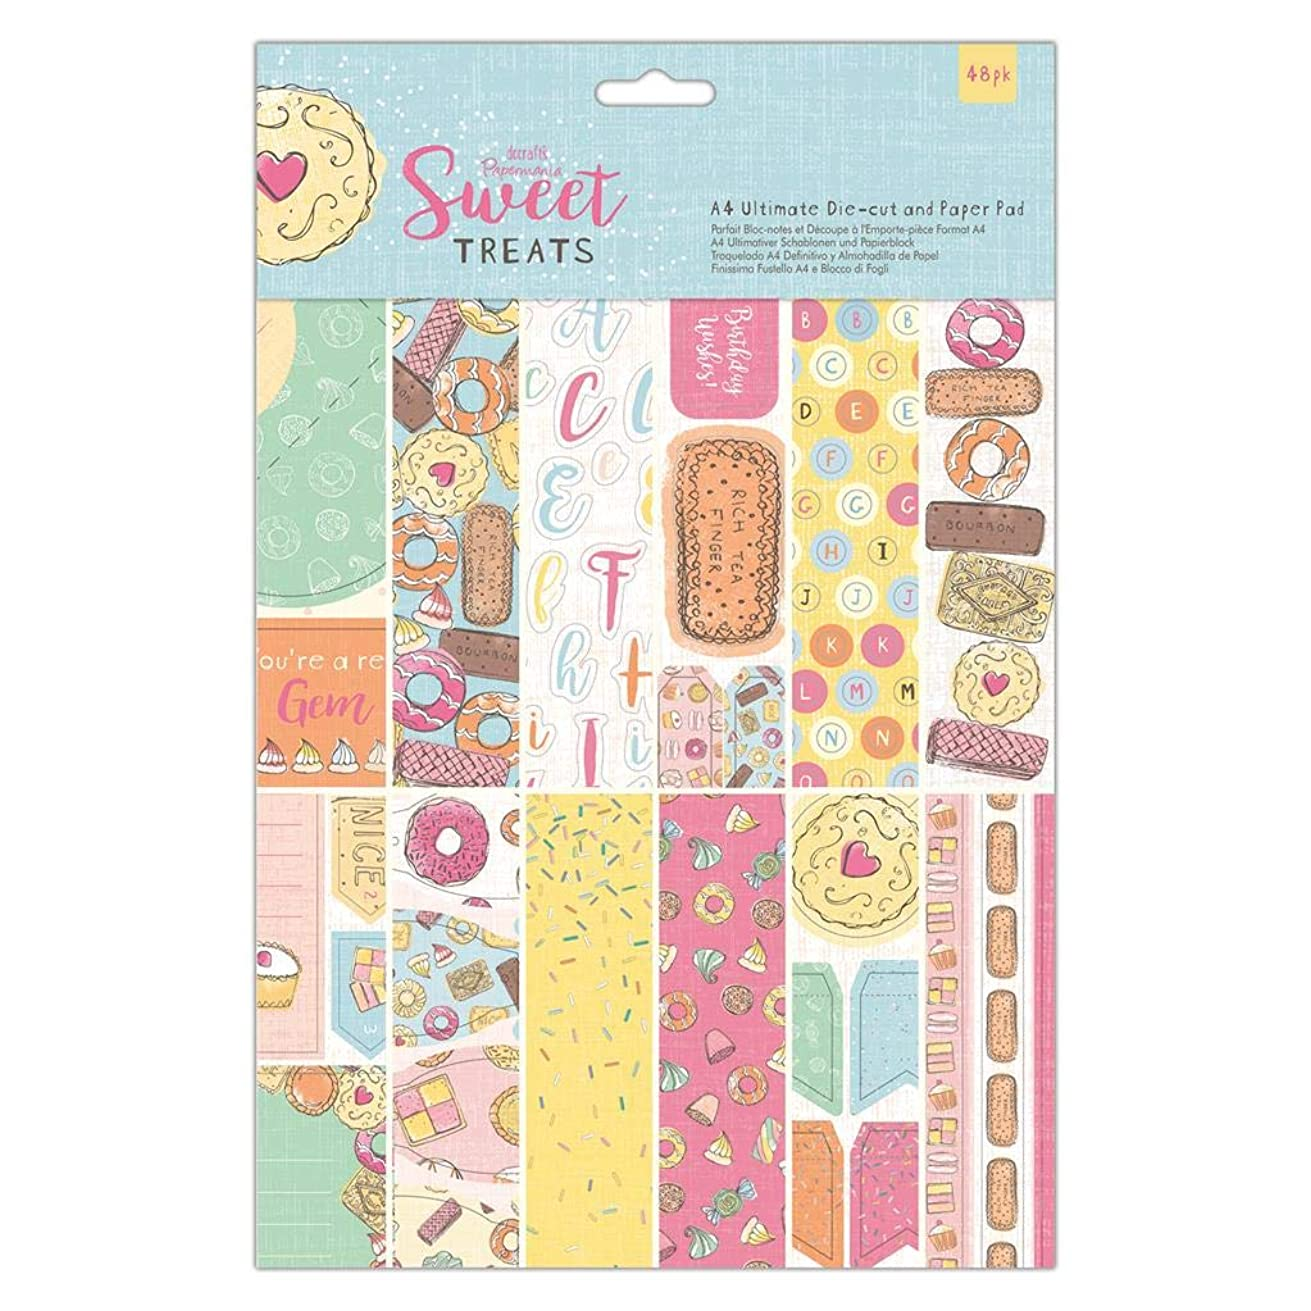 Papermania A4 Ultimate Die-cut & Paper Pad (48 Pack) - Sweet Treats